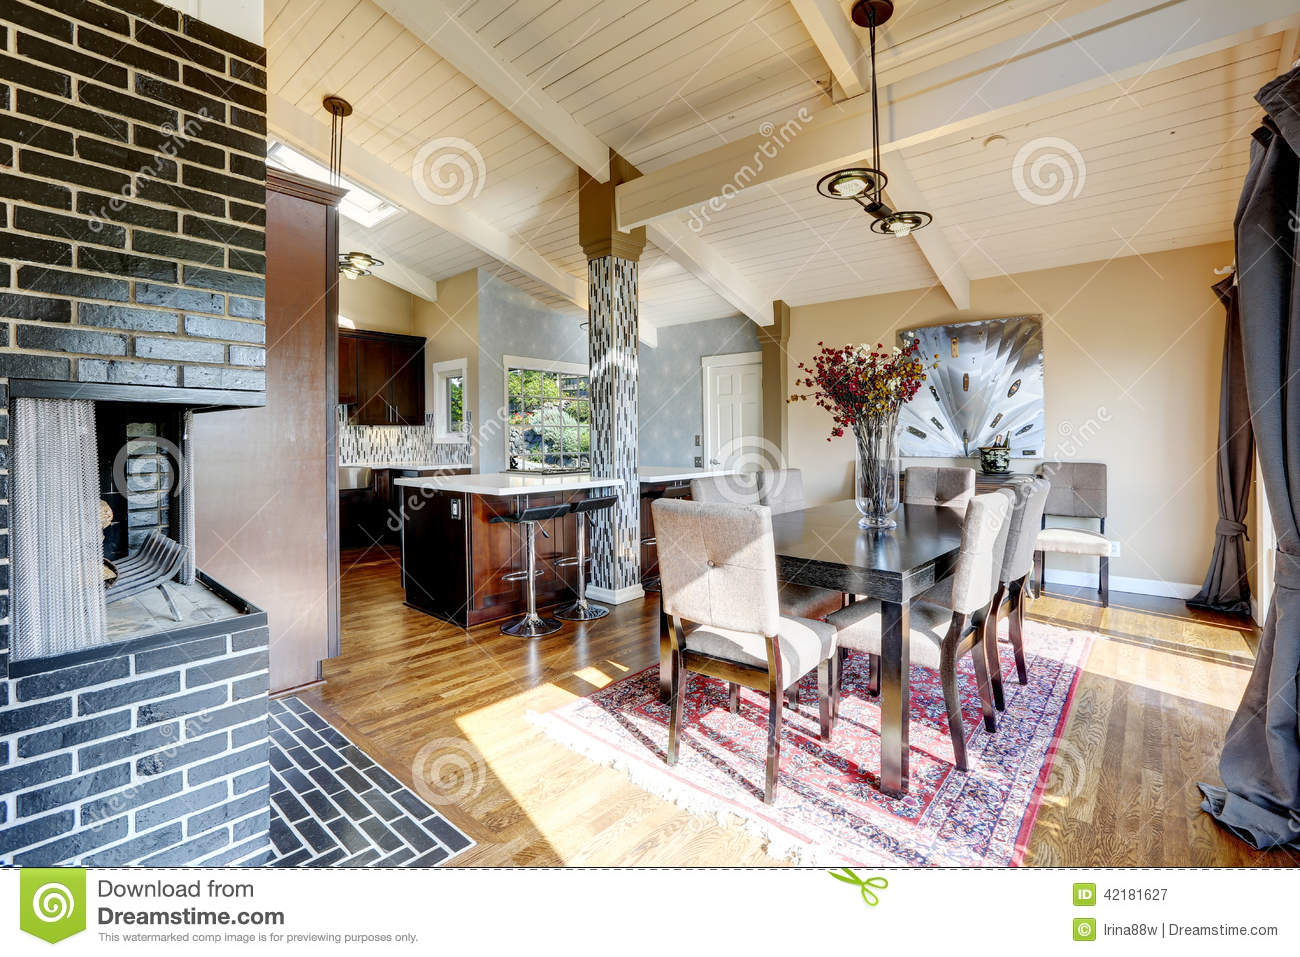 Modern Kitchen Room Interior With Fireplace And Dining Area Stock Image Image Of Elegant Furniture 42181627